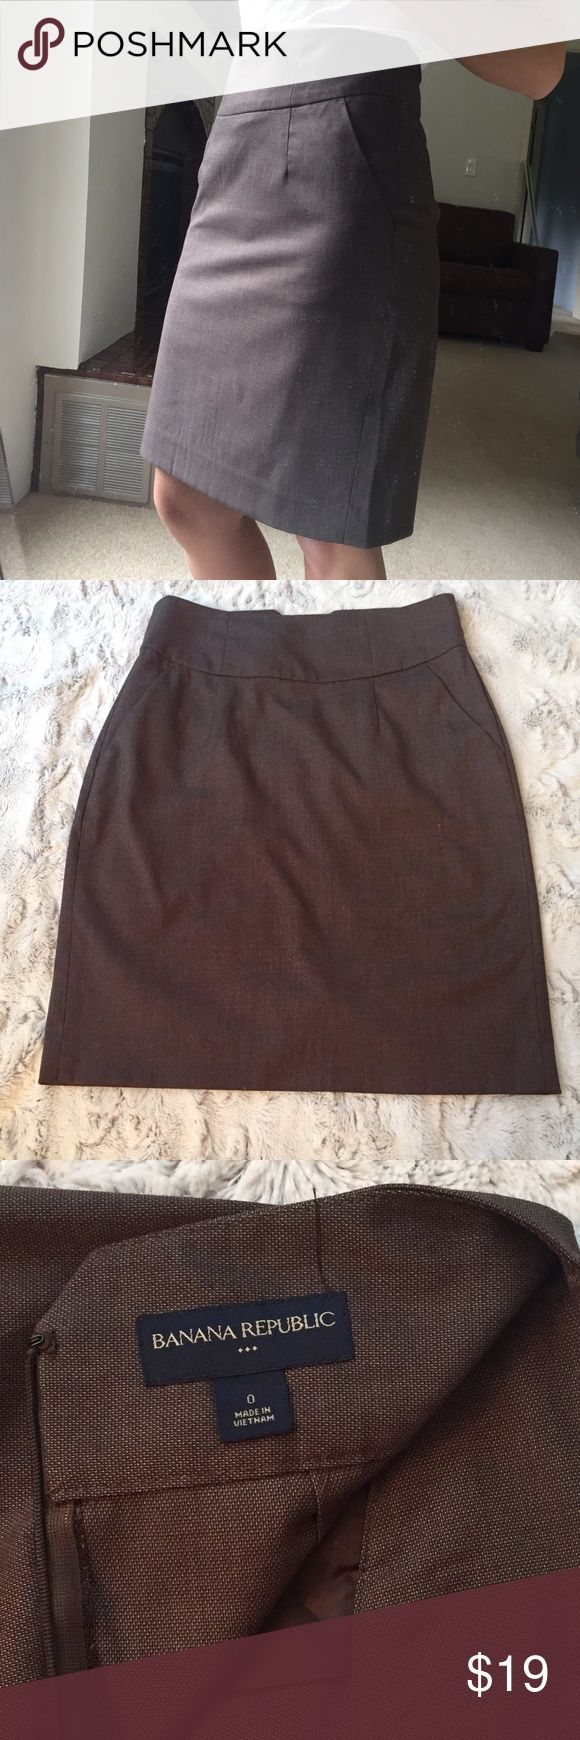 Banana republic light brown pencil skirt Light brown Banana Republic pencil skirt. Has a slit in the back. Size 0. Banana Republic Skirts Pencil